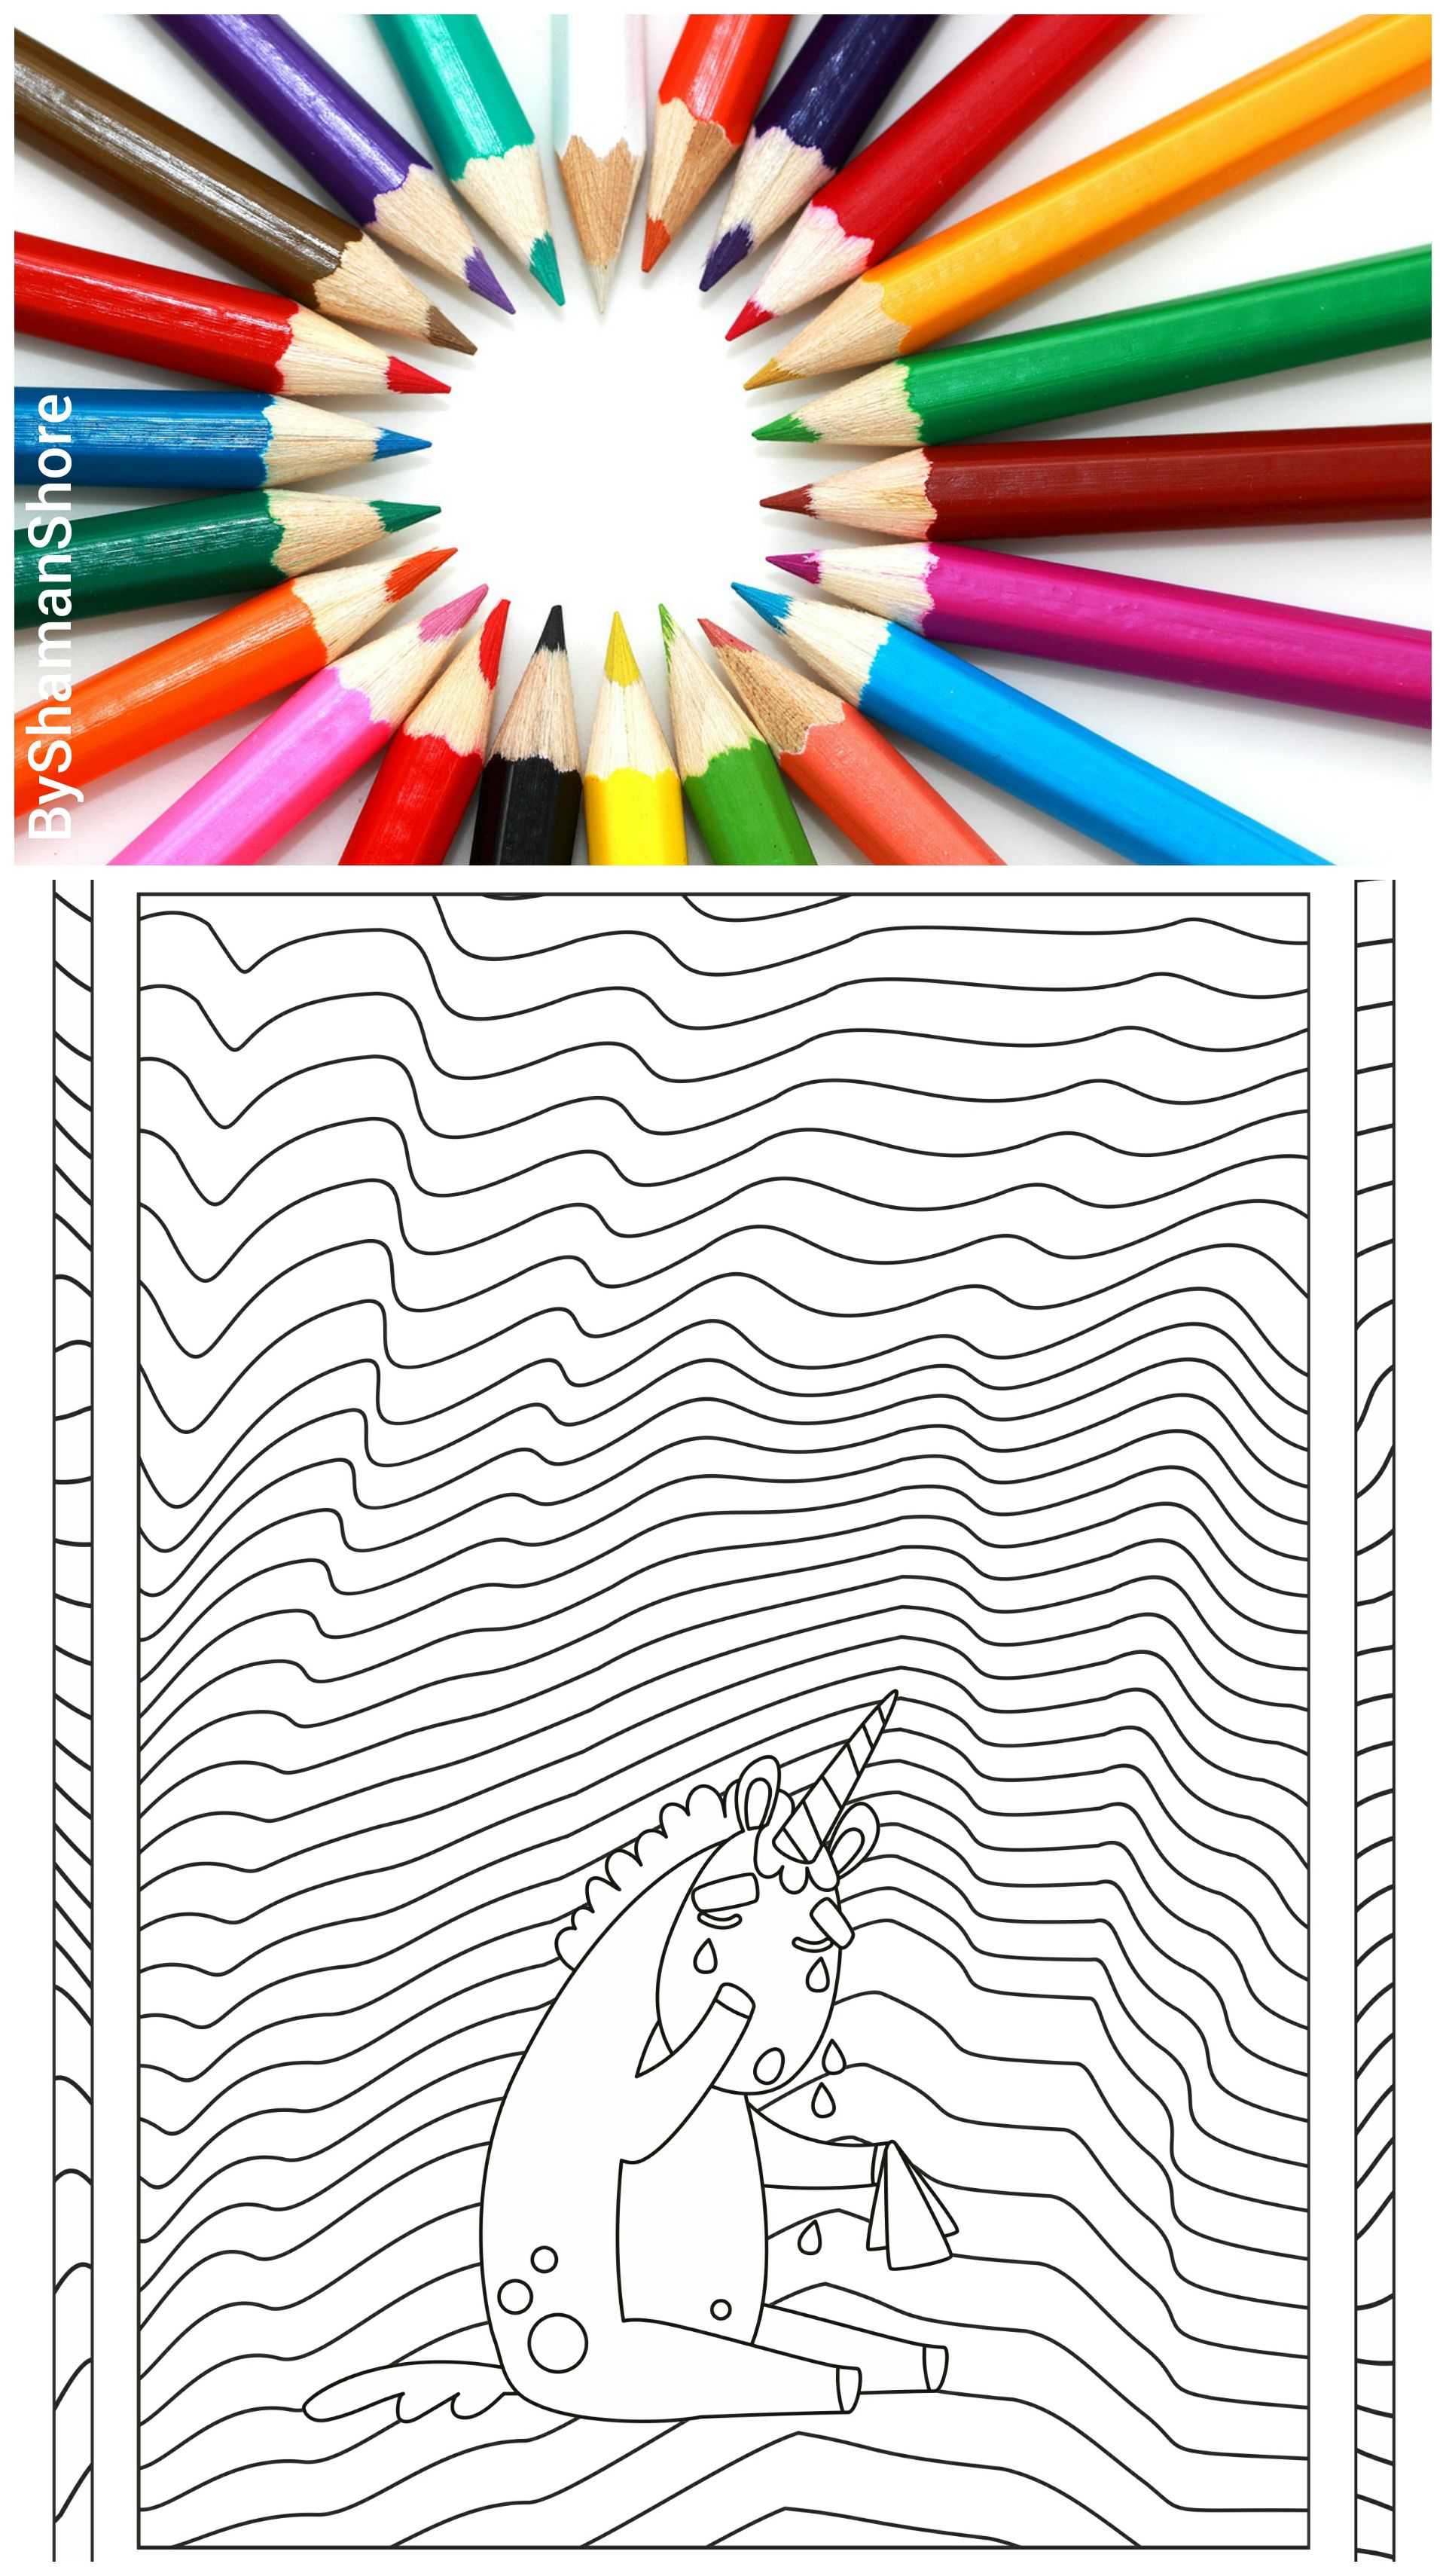 Unicorn Coloring Pages For Grown Ups Printable Adult On Etsy